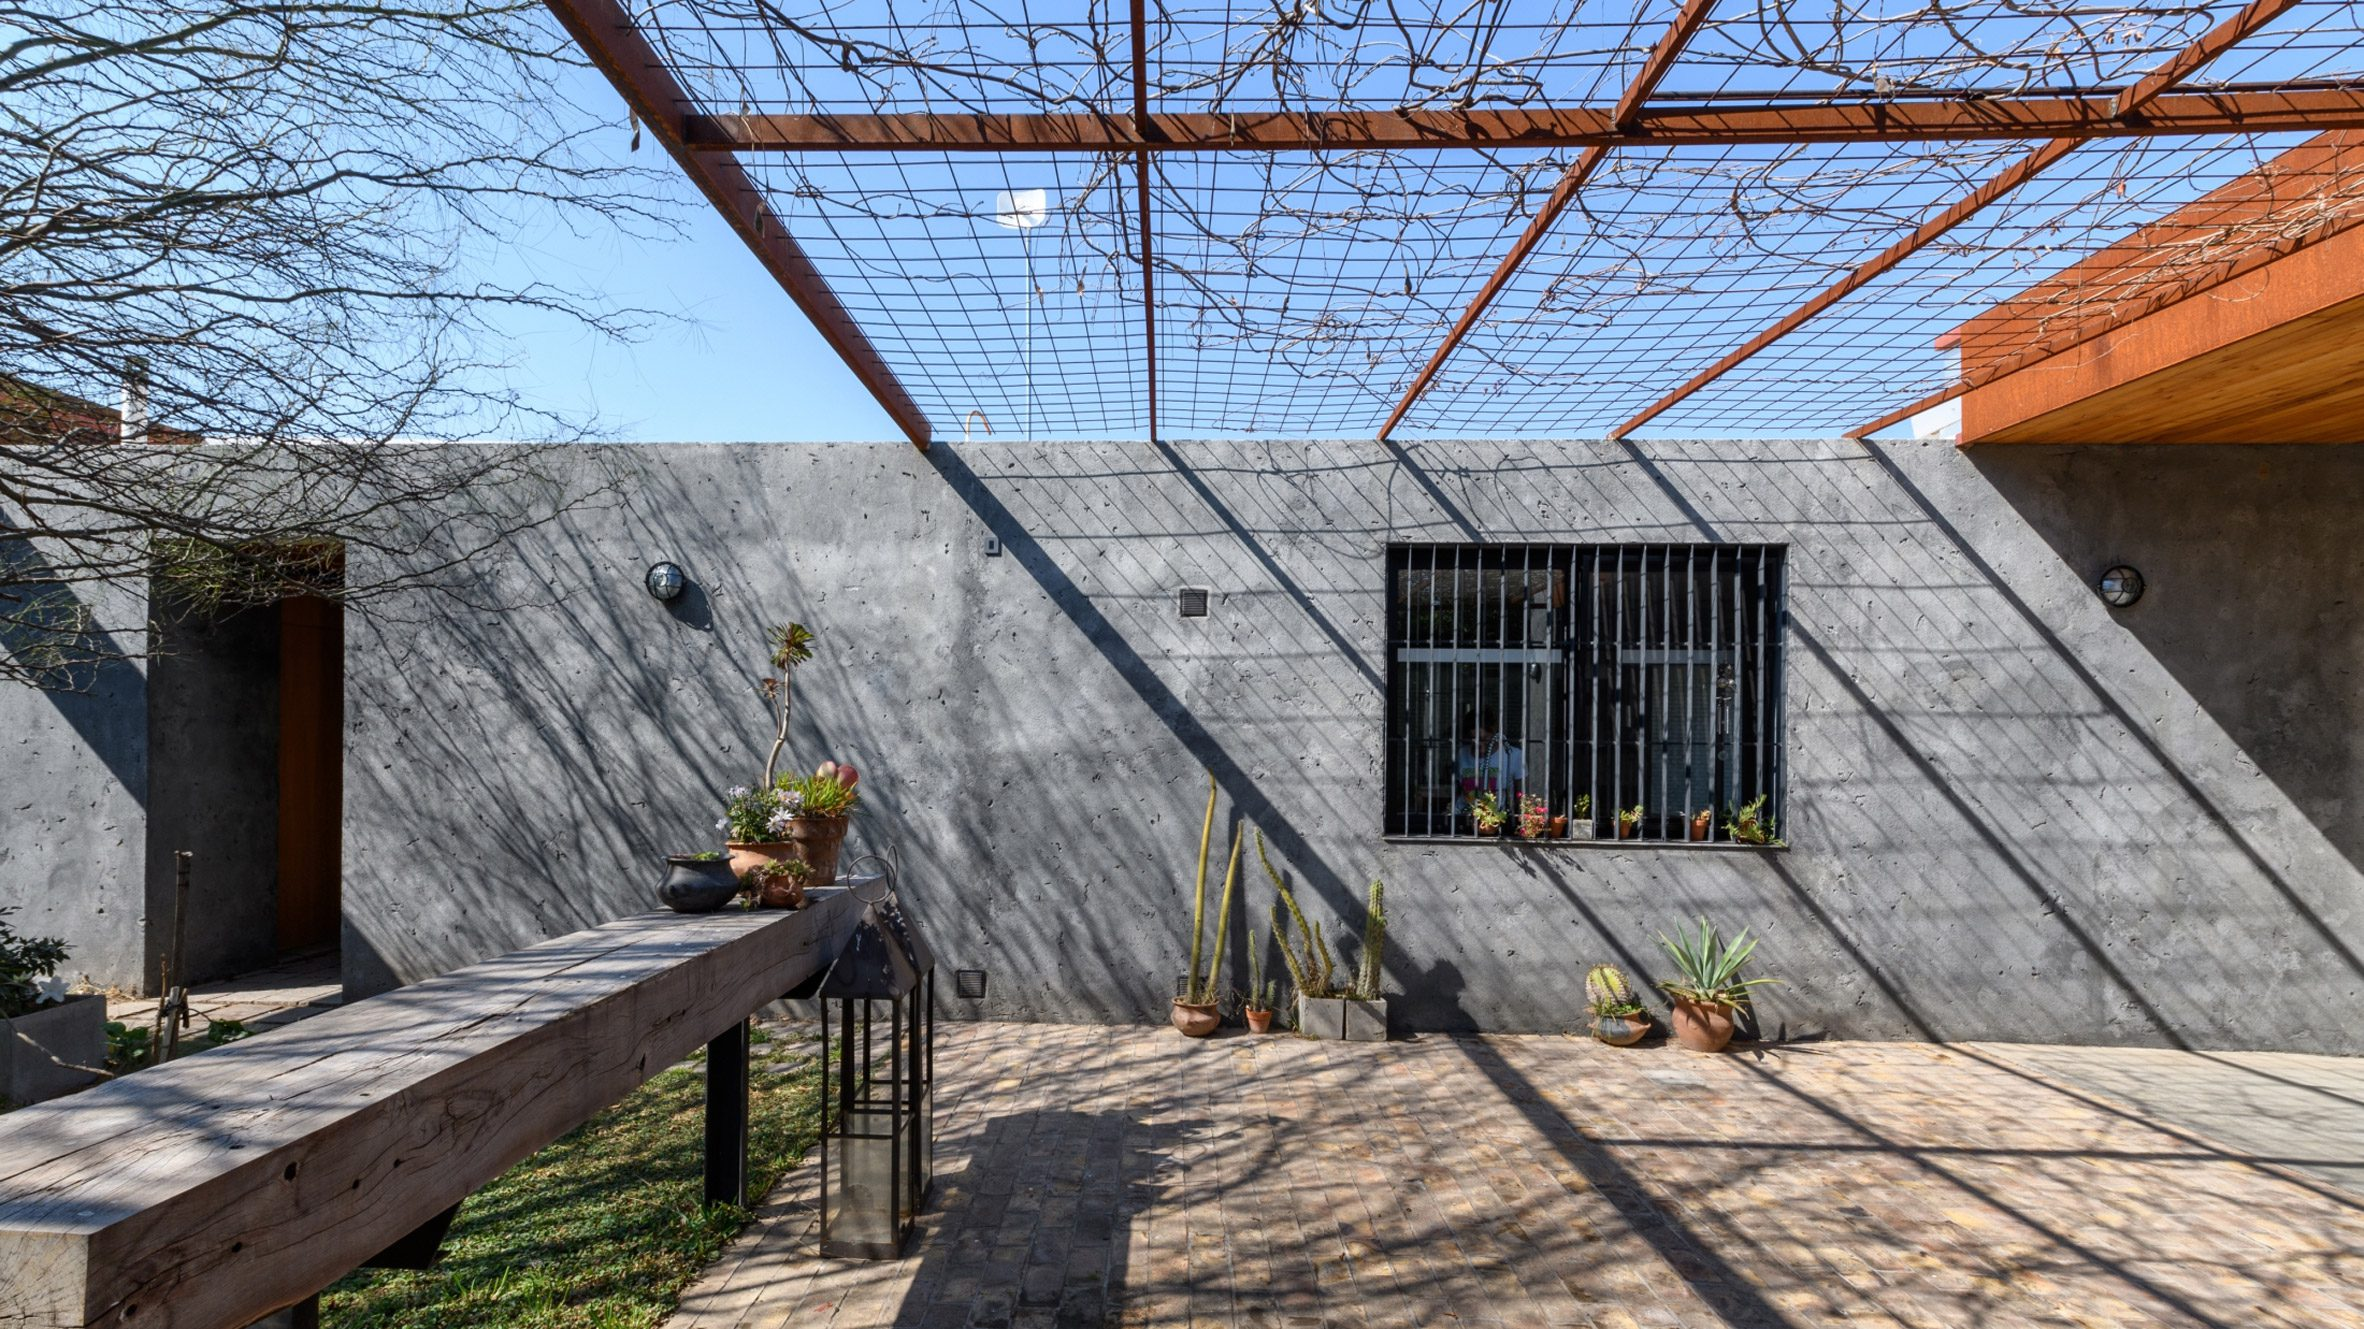 Patios between the concrete structures